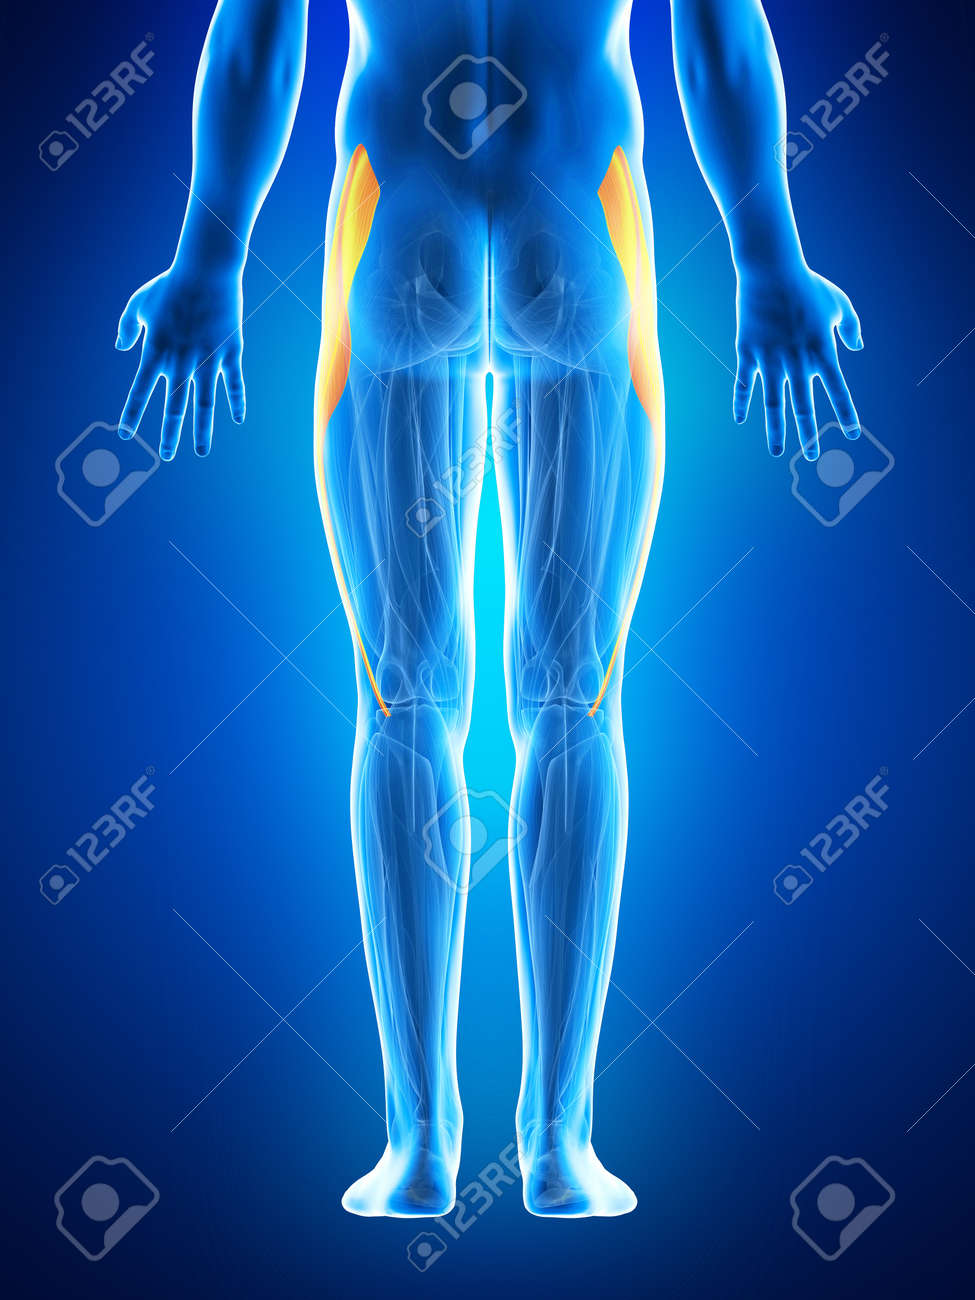 Anatomy Illustration Showing The Tensior Fascia Lata Stock Photo ...